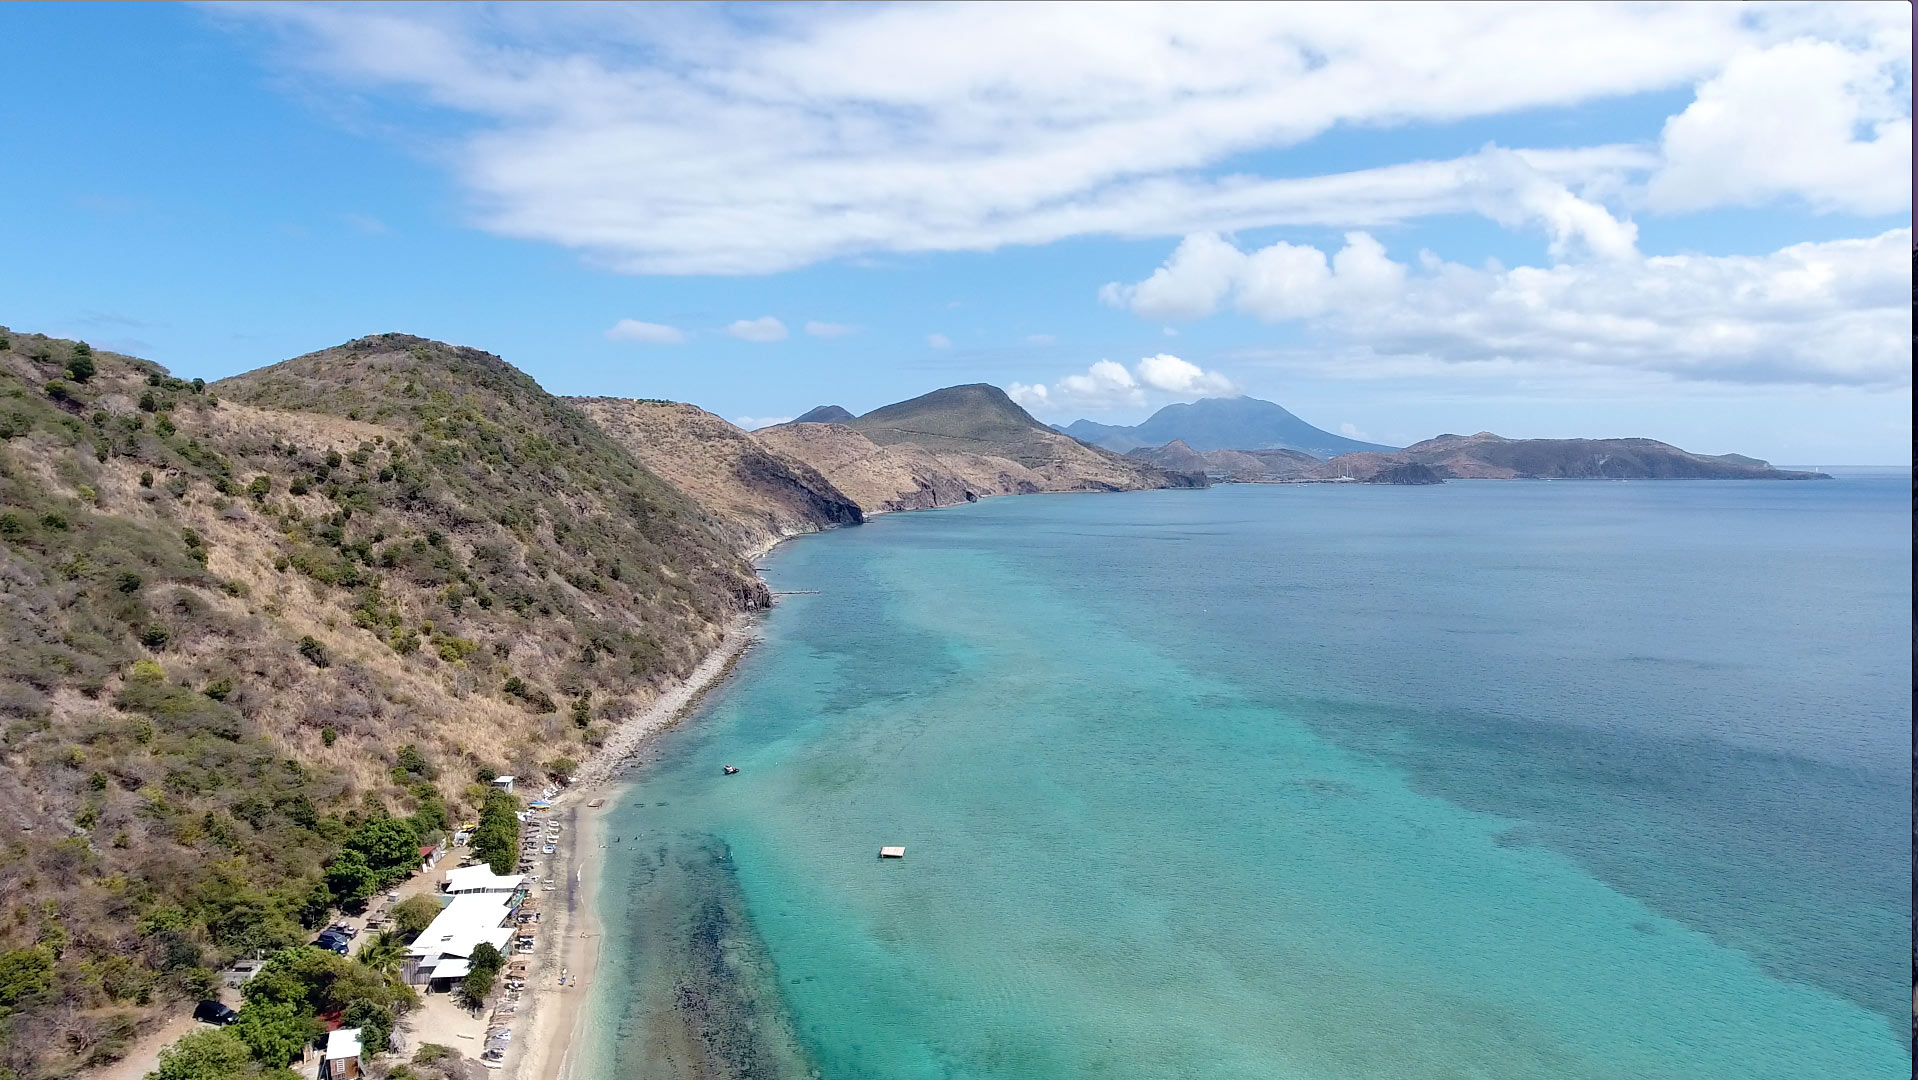 Drone capture of Frigate Bay in St. Kitts looking south